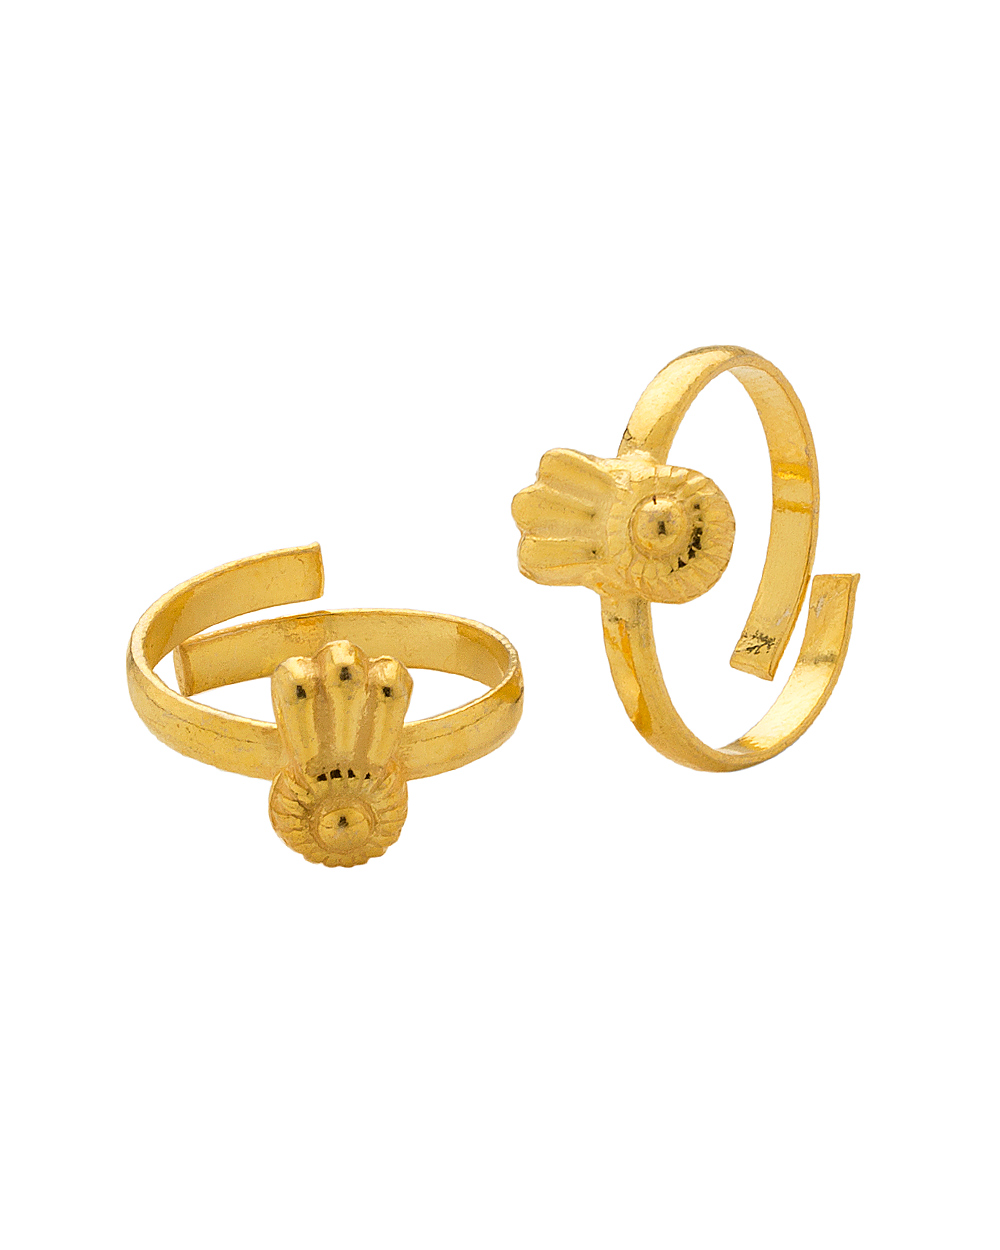 Toe Rings Designs in Gold Gold Plating Toe Ring Pair